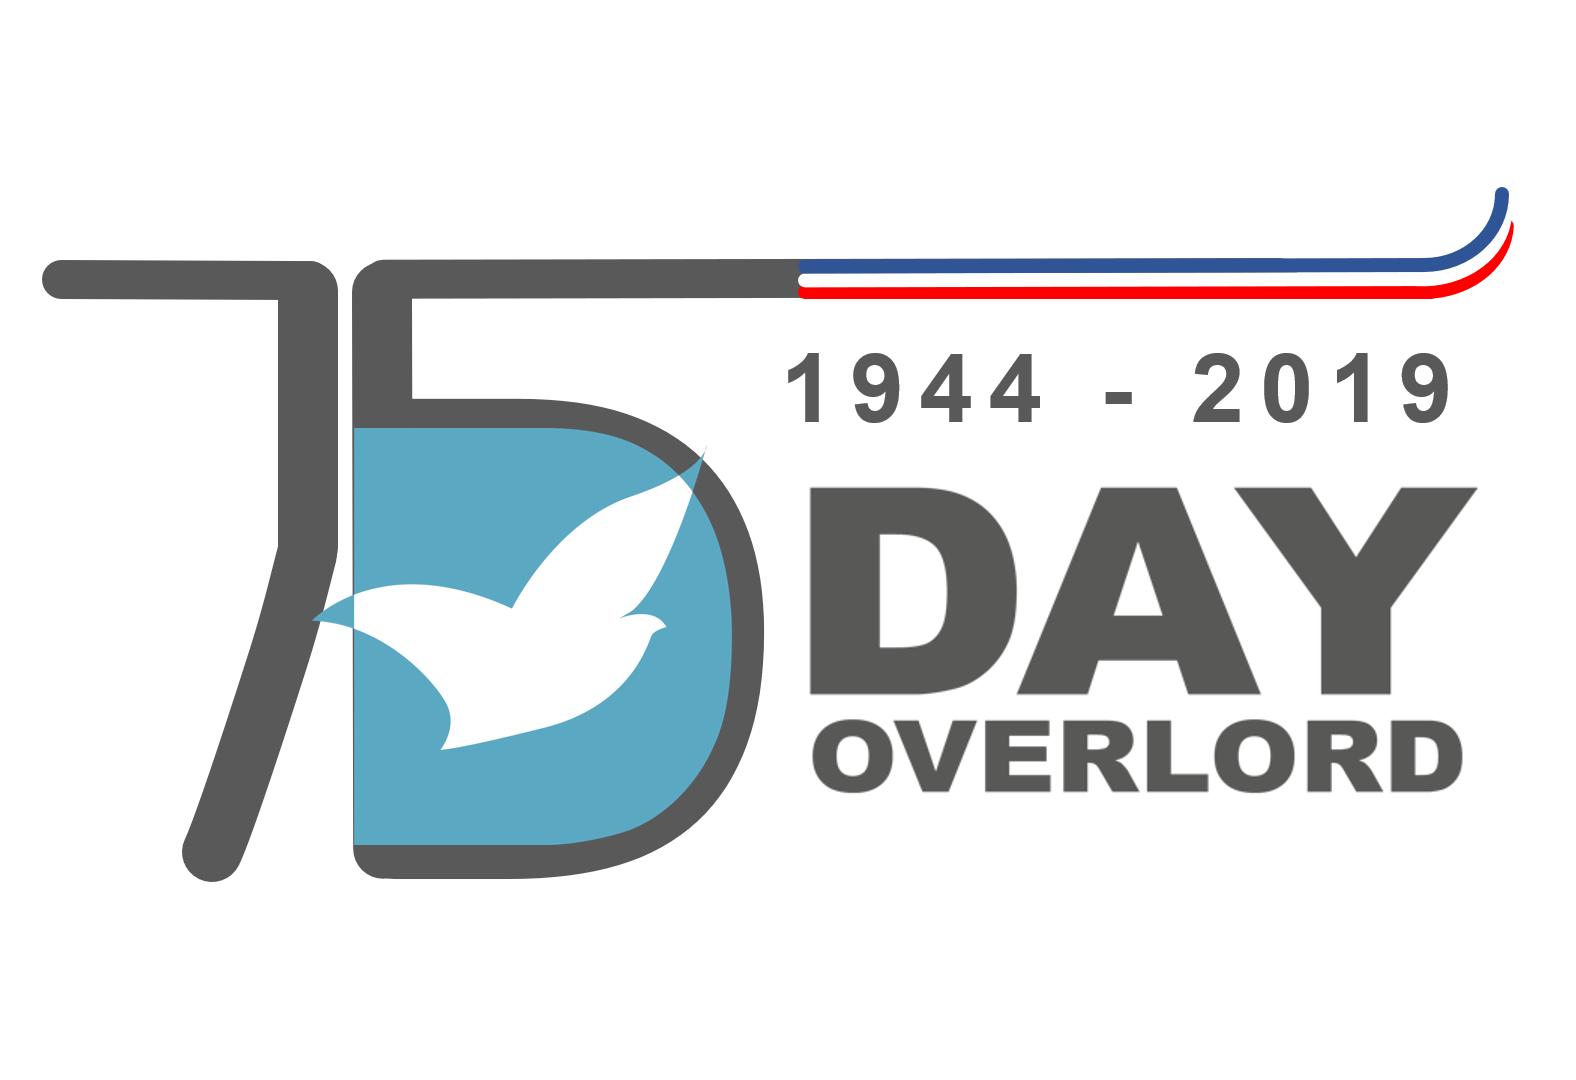 Calendario Tour De France 2019.D Day 75th Anniversary Calendar Normandy 2019